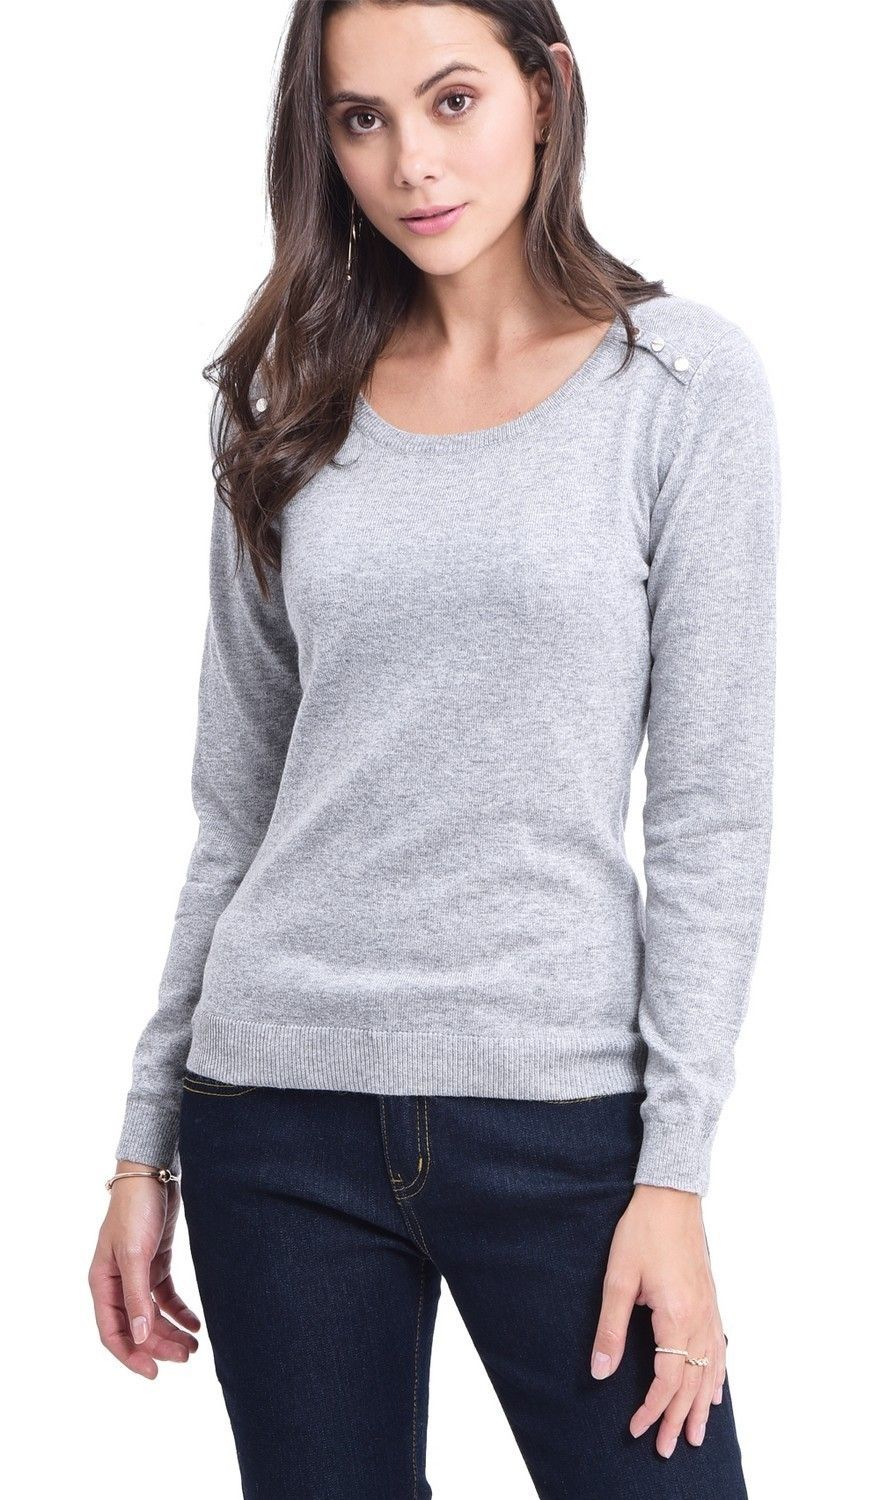 C&JO Round Neck Sweater with Shoulder Button Detail in Light Grey